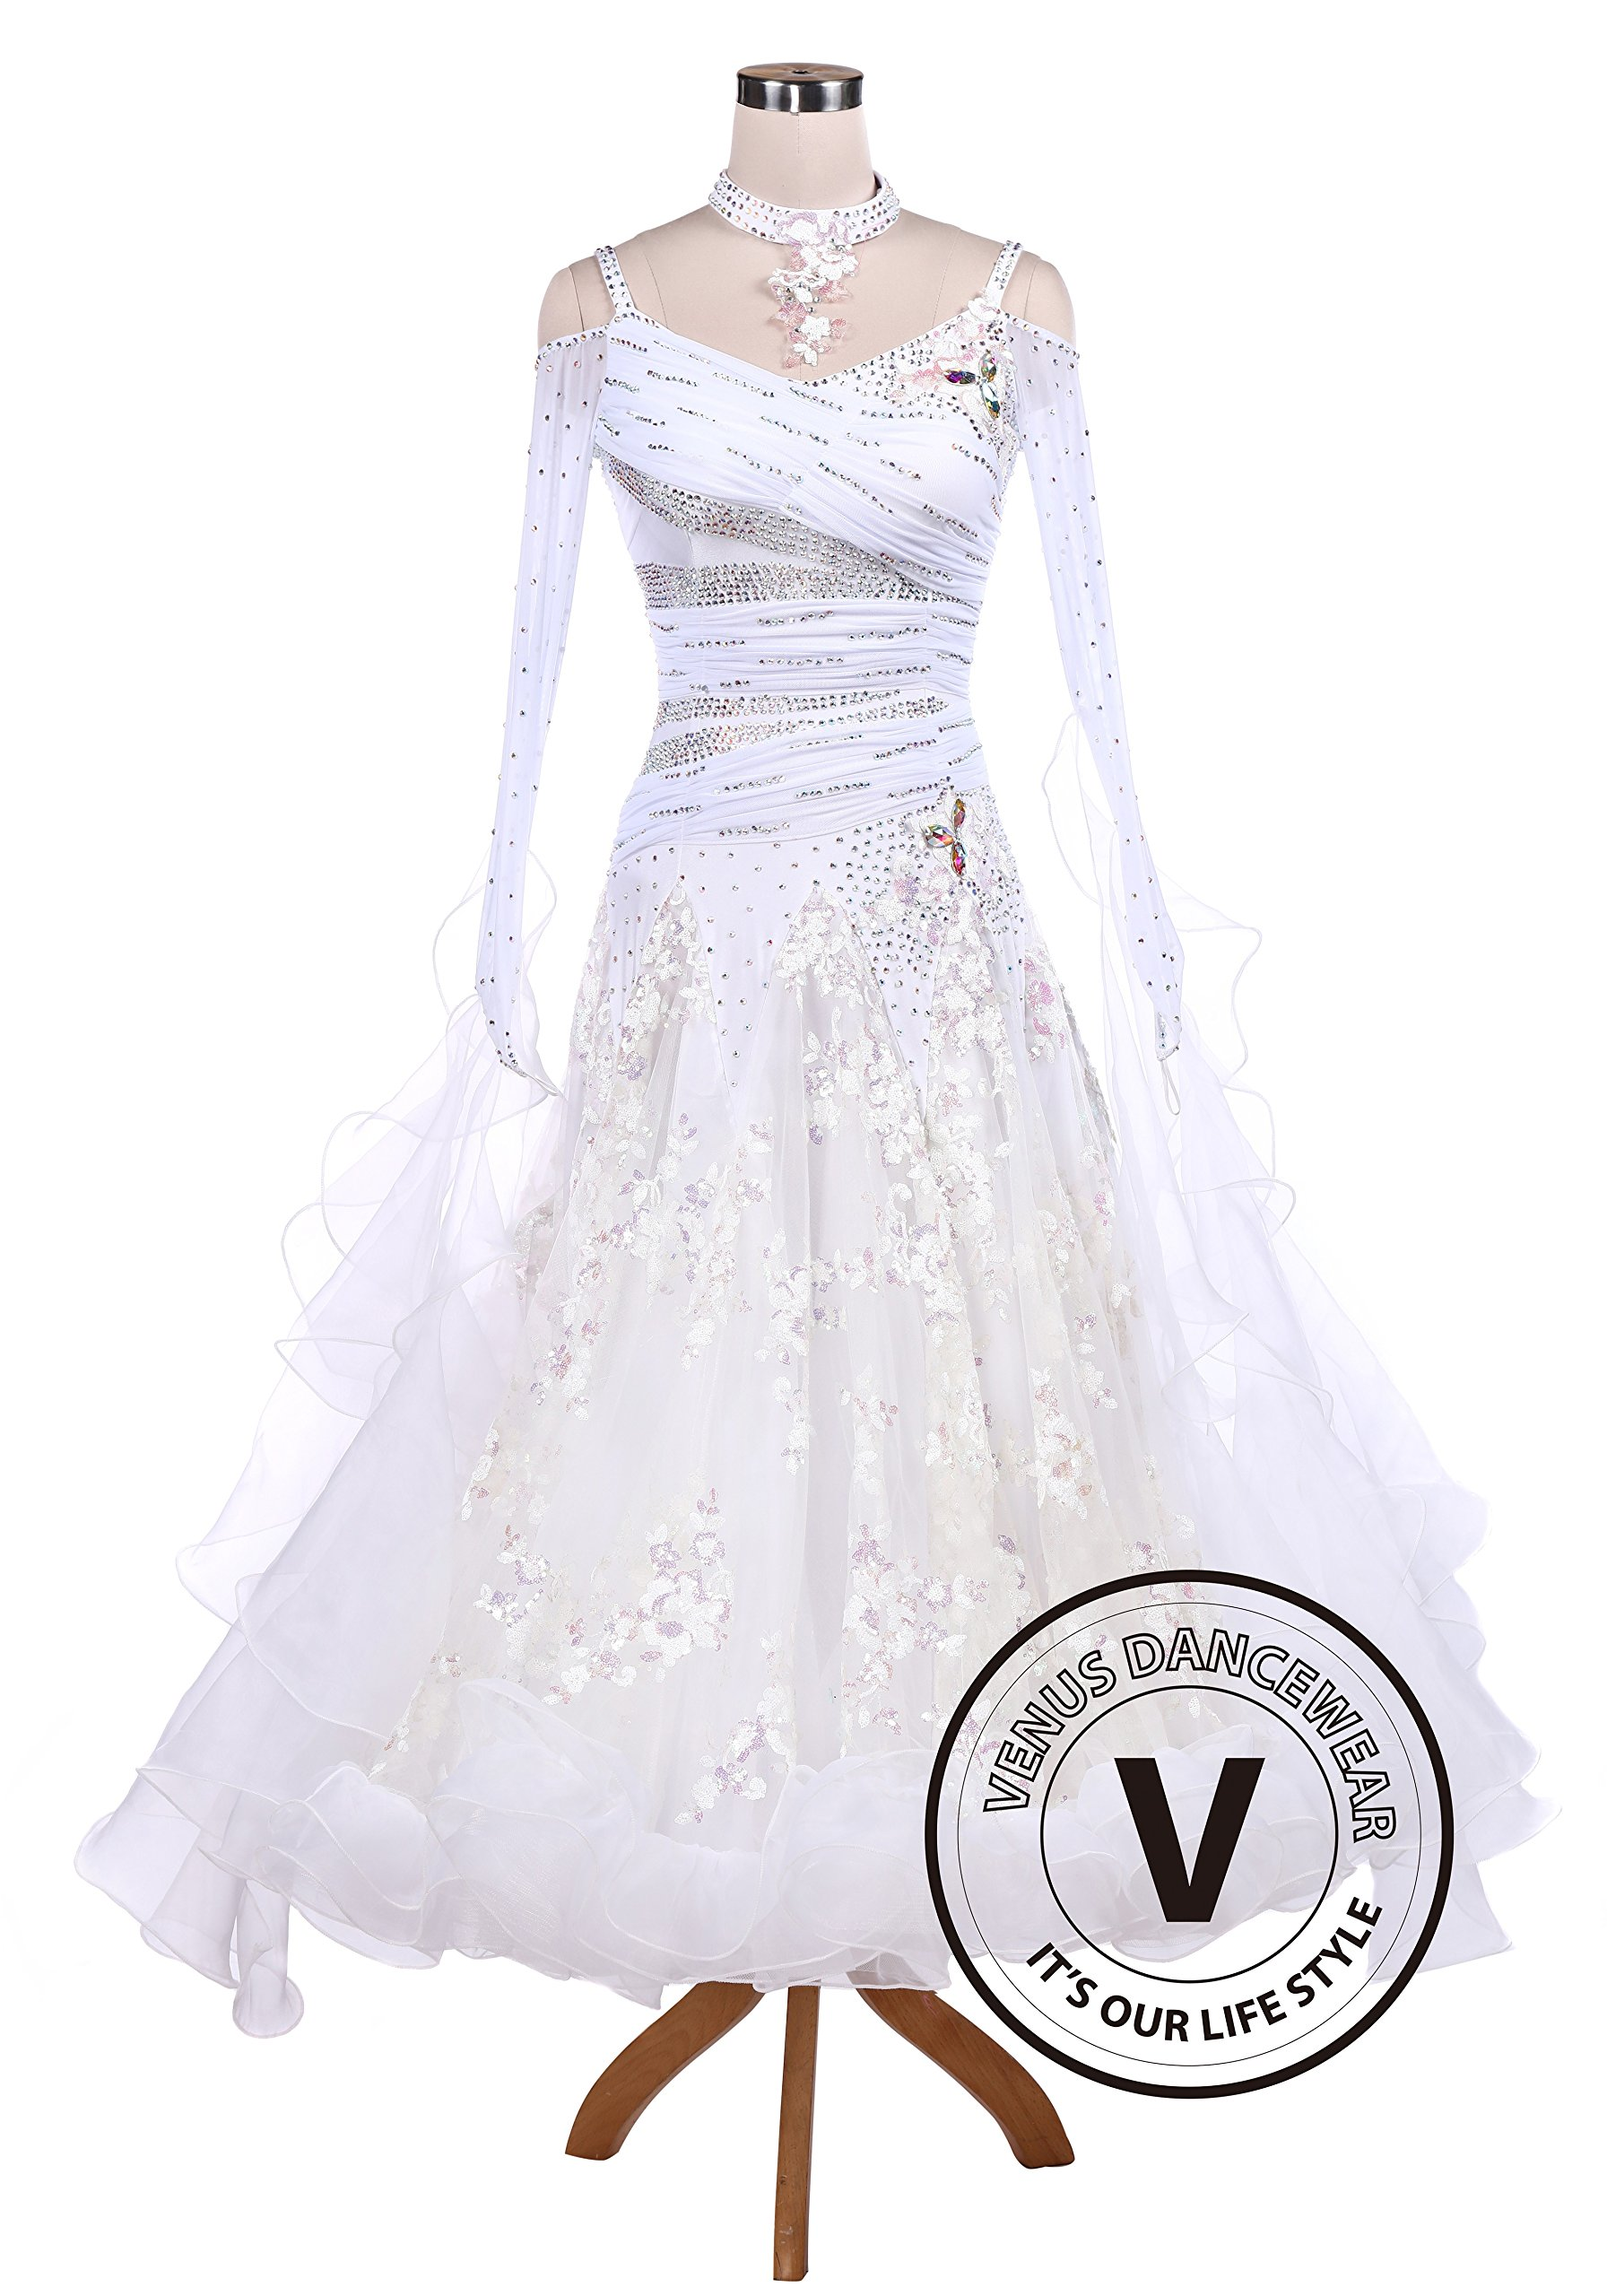 White Sequin Embroidered Ballroom Competition Dance Dress by Venus Dancewear (Image #1)